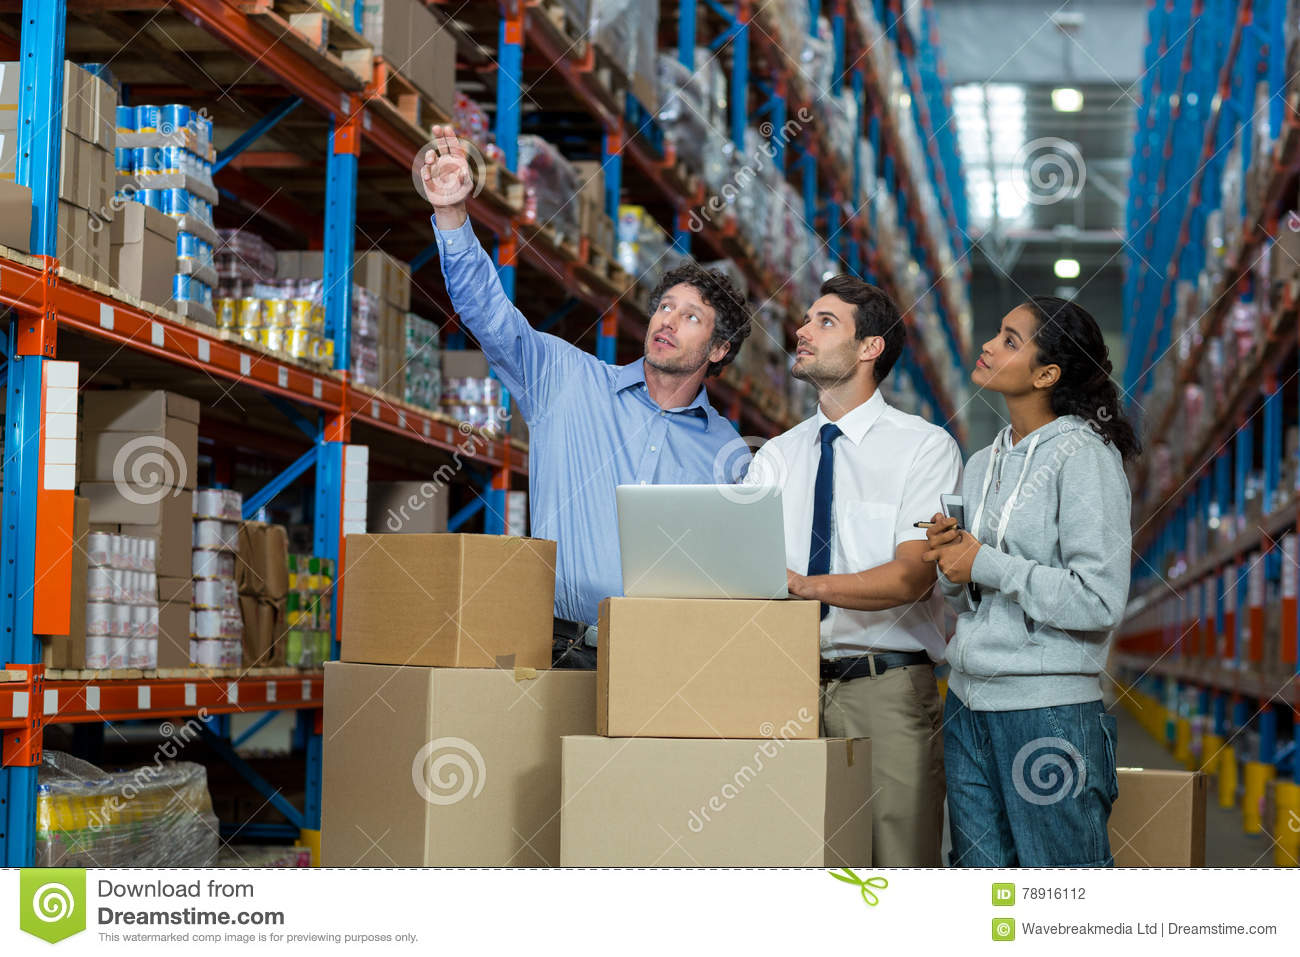 warehouse, storehouse, storage, goods, stock, worker, manager, staff, colleagues, team, well dressed